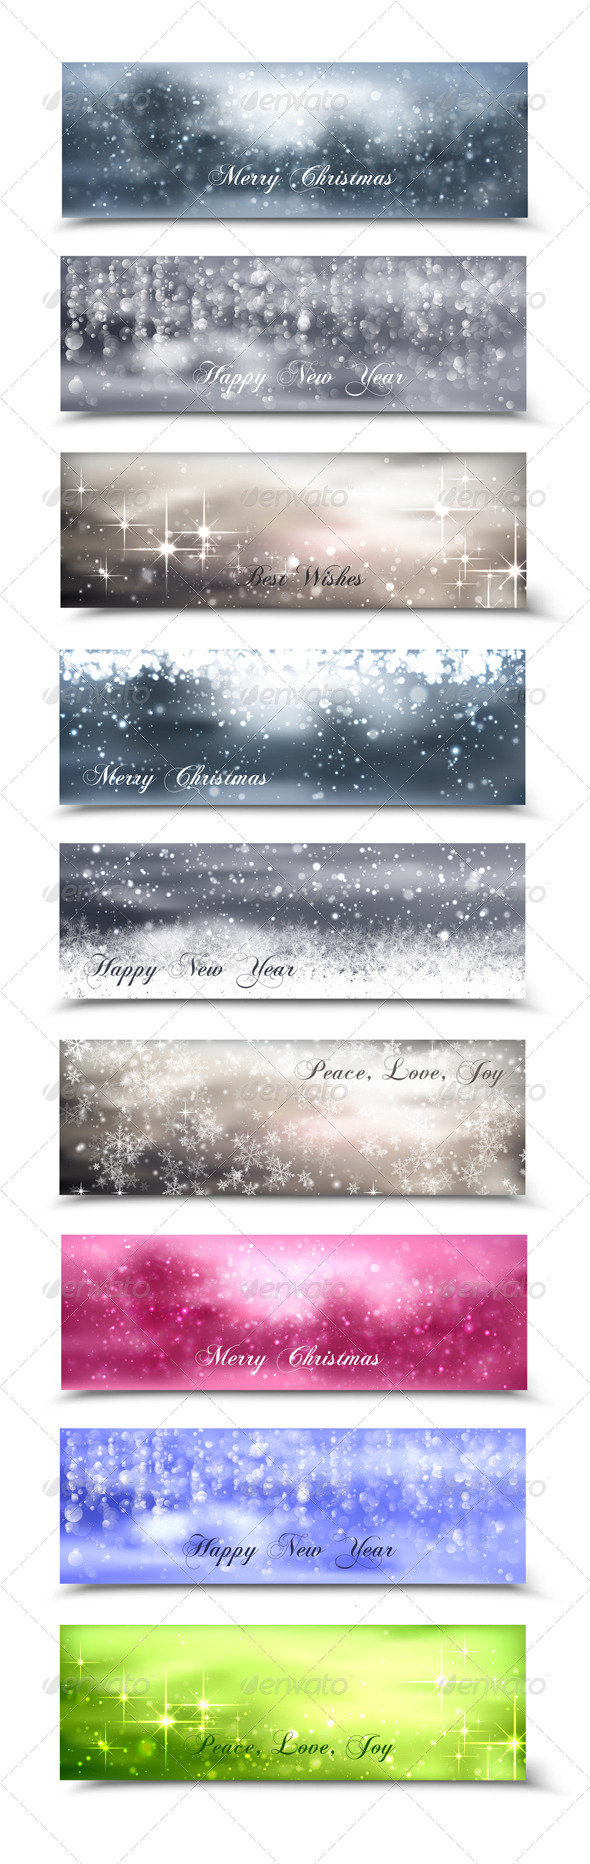 GraphicRiver Christmas Banners 6331088